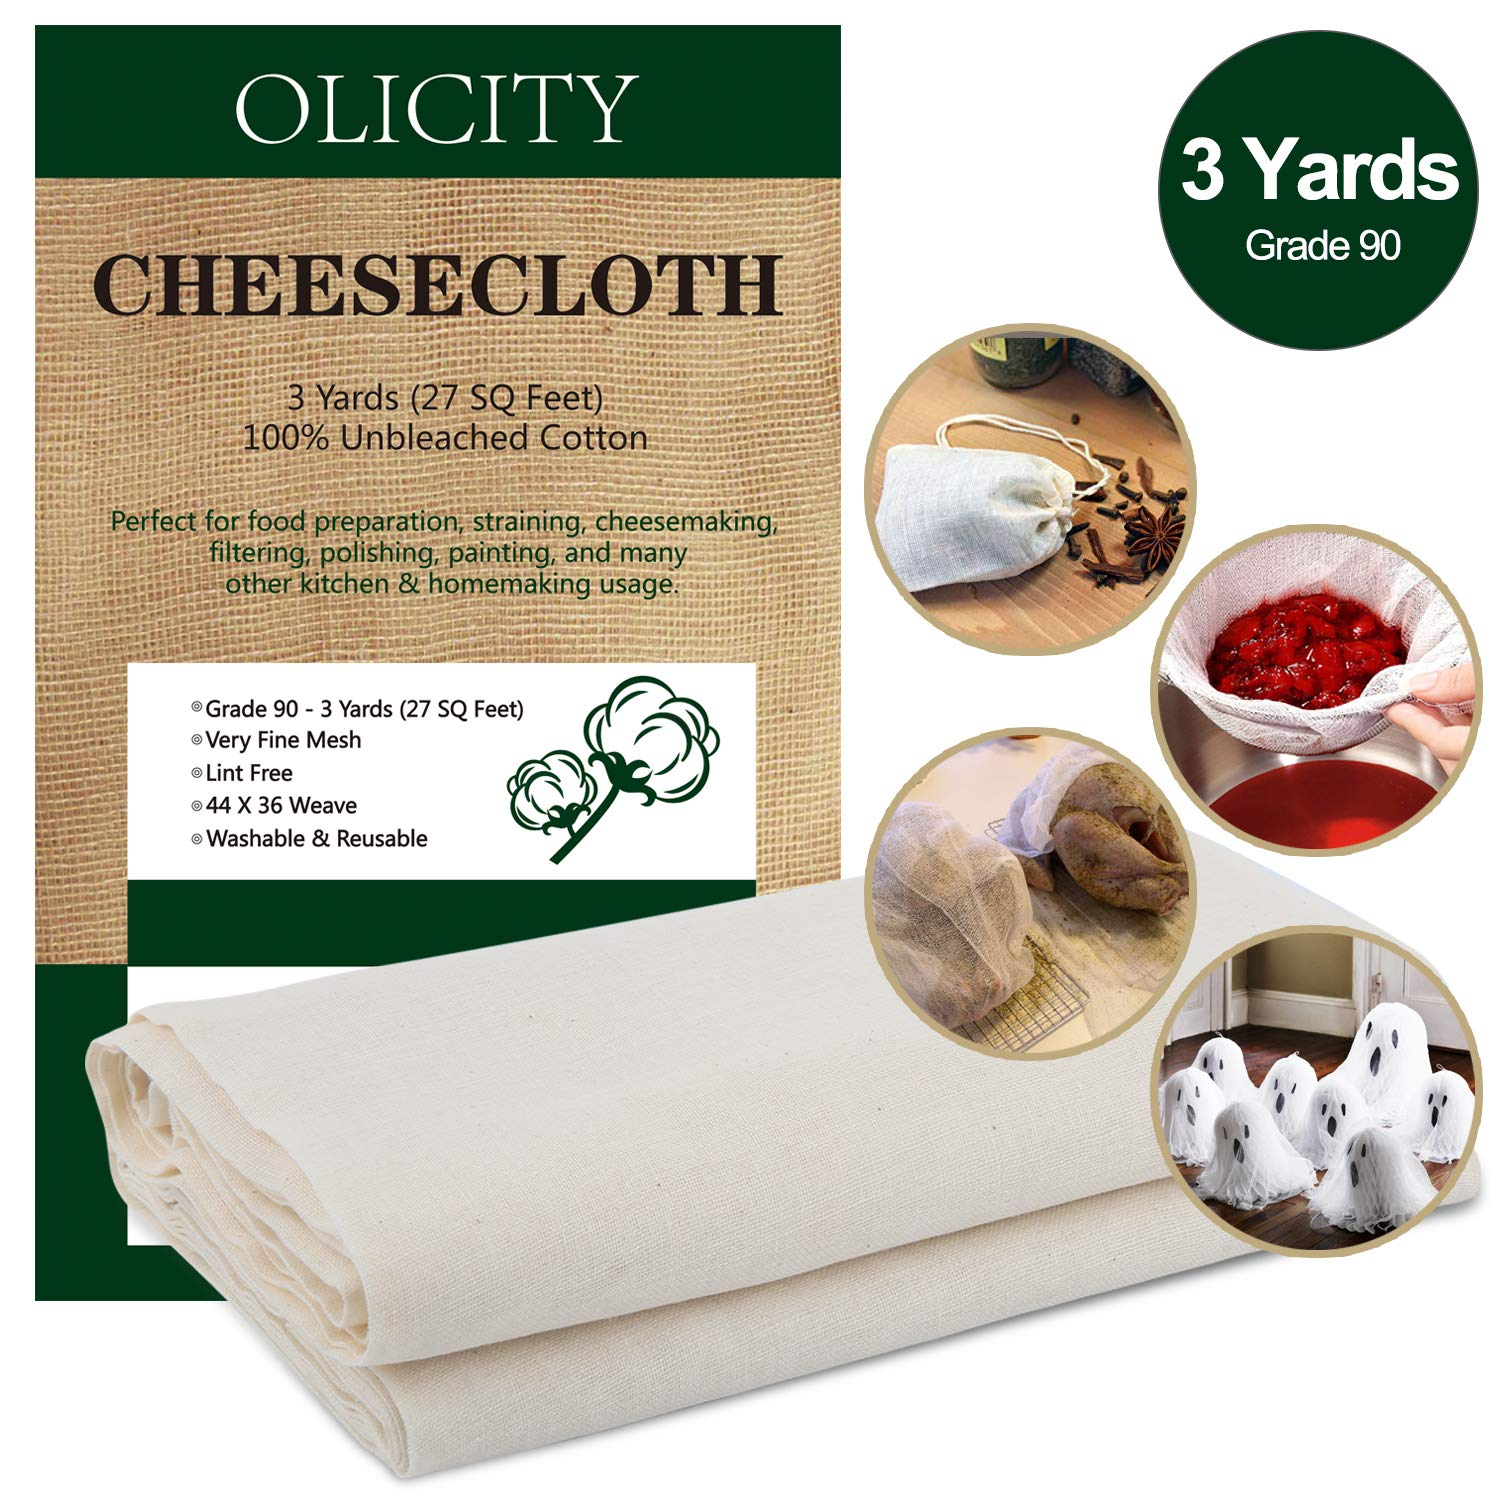 Olicity Cheesecloth, Grade 90, 27 Sq Feet, 100% Unbleached Cotton Fabric Ultra Fine Muslin Cloths for Butter, Cooking, Strainer, Baking, Hallowmas Decorations (Grade 90-3 Yards)